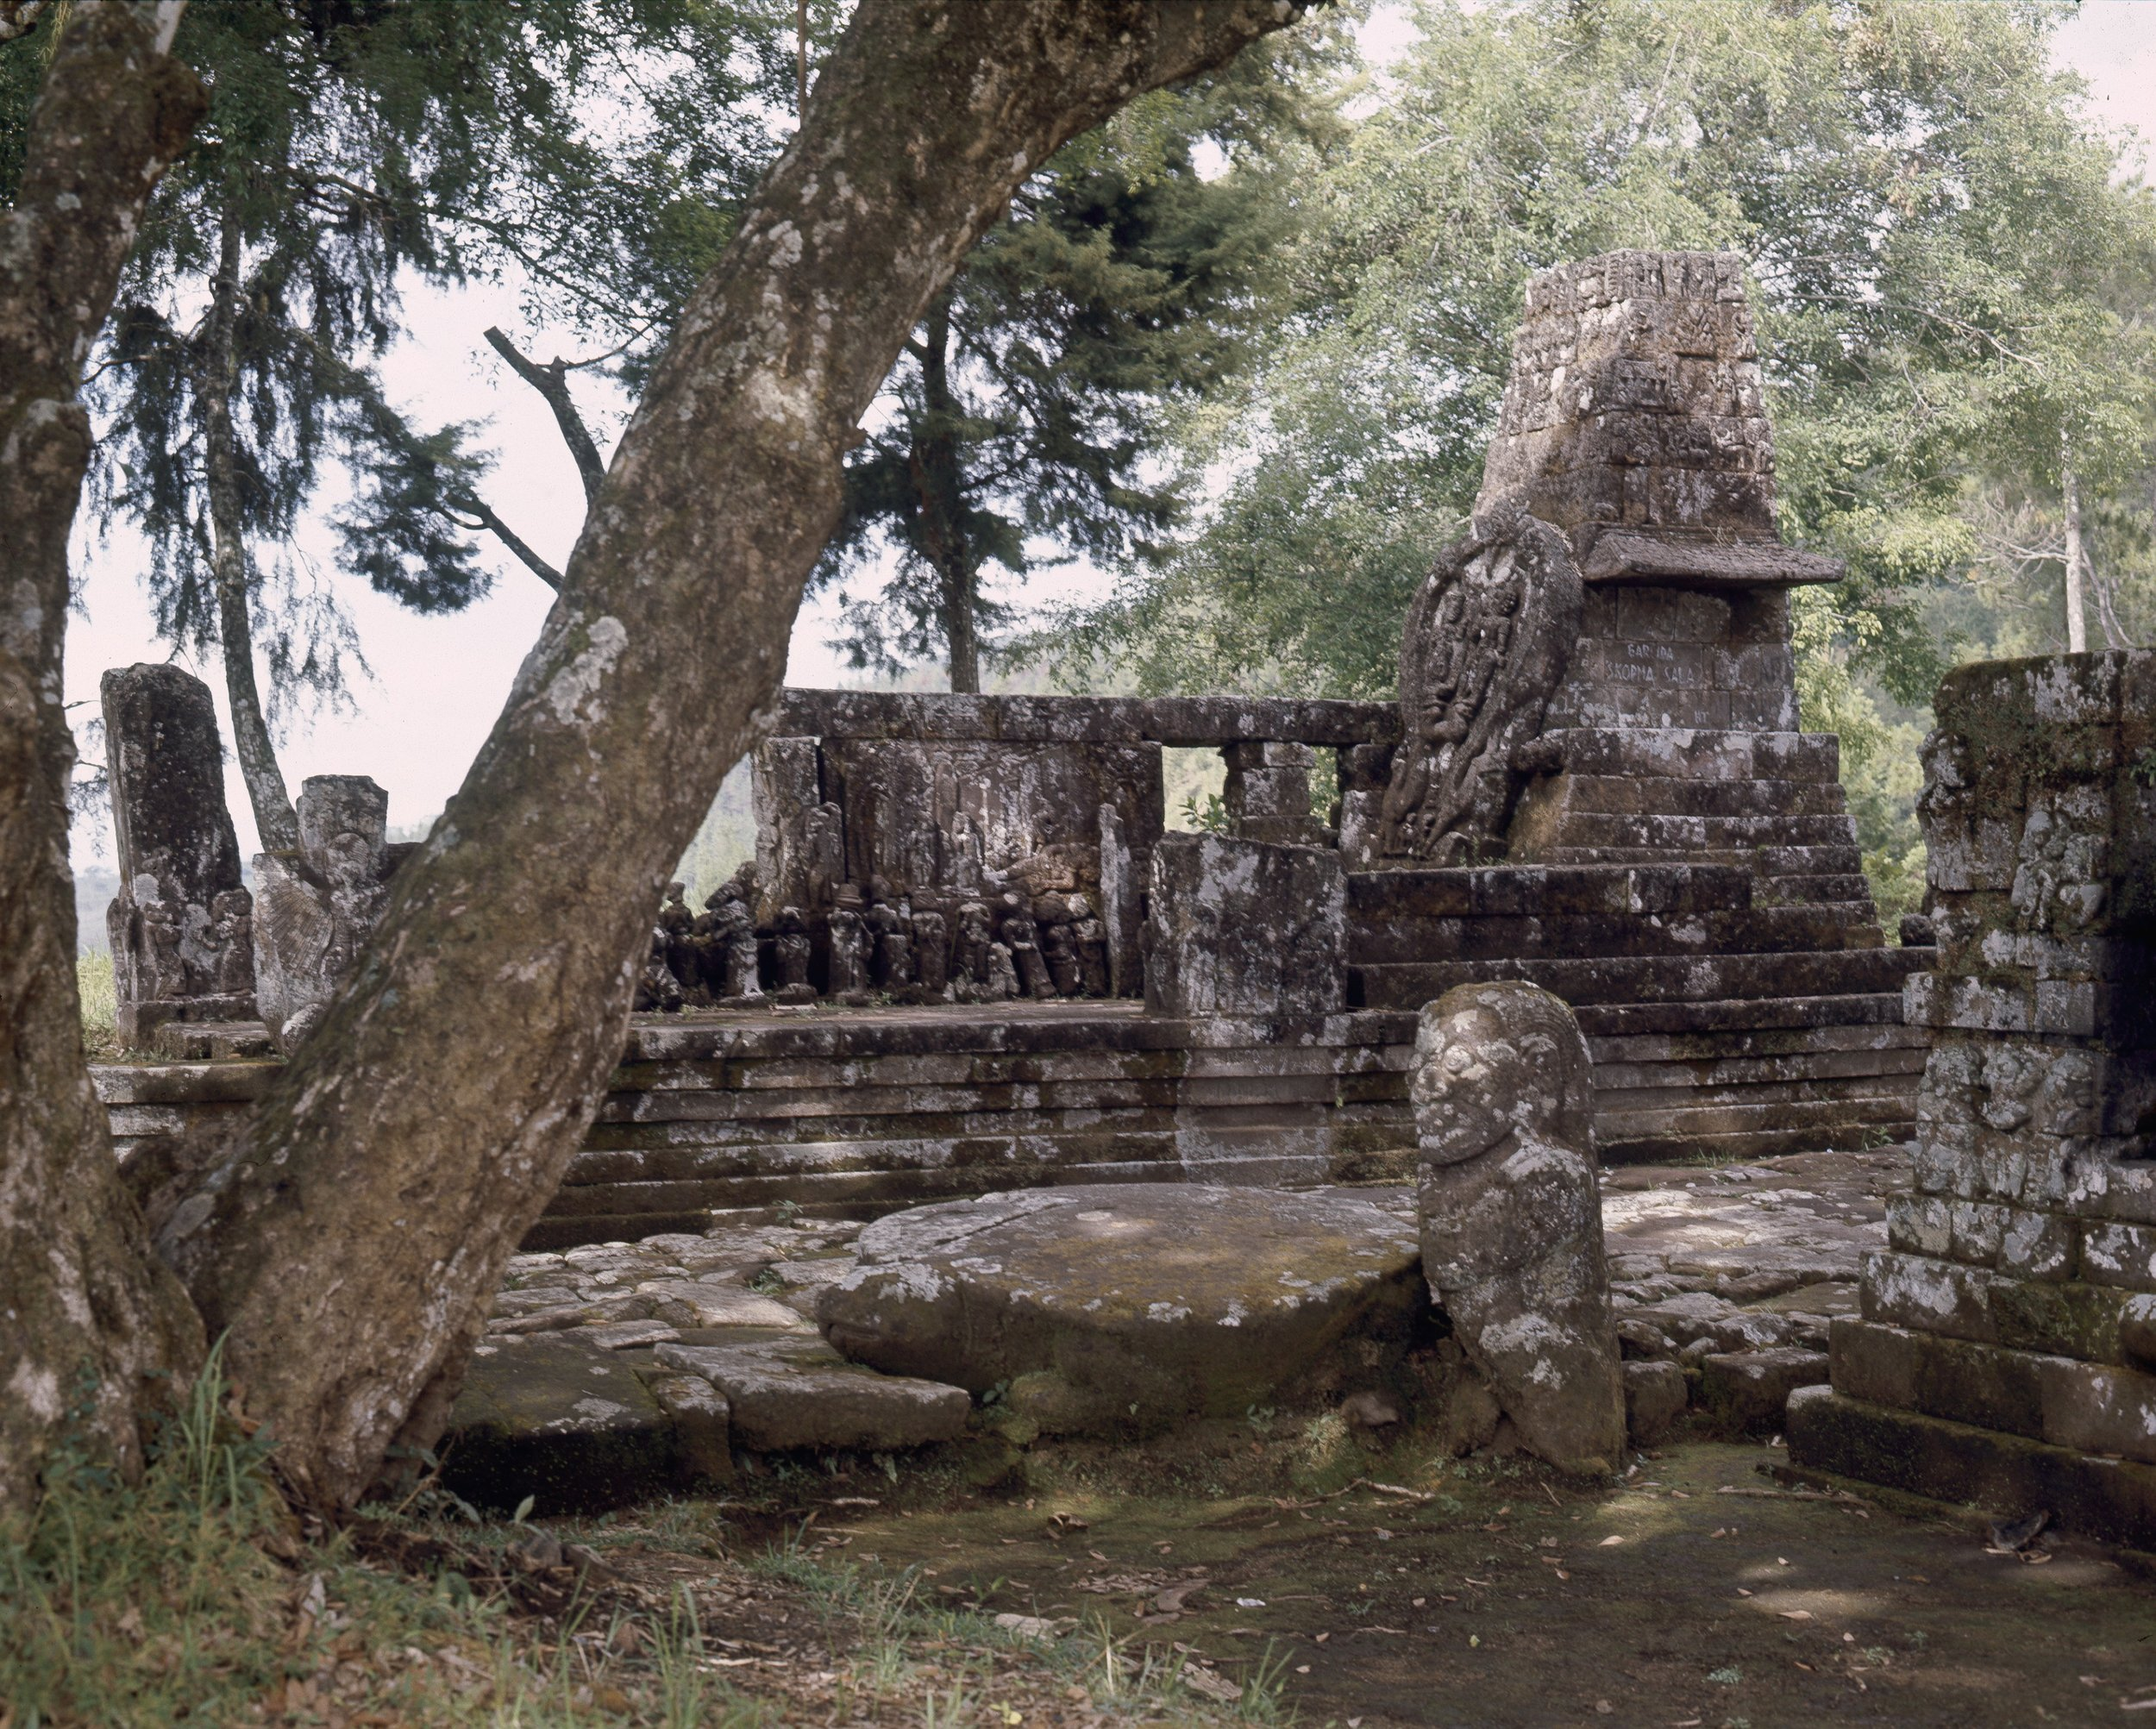 View of Candi Sukuh. It was a sacred place for the worship of ancestors, nature spirits and fertility cults. Country of Origin: Indonesia. Culture: Hindu. Date/Period: c 1437 AD, Majapahit Kingdom. Place of Origin: Central Java, Western slopes of Mount Lawu. Credit Line: Werner Forman Archive.